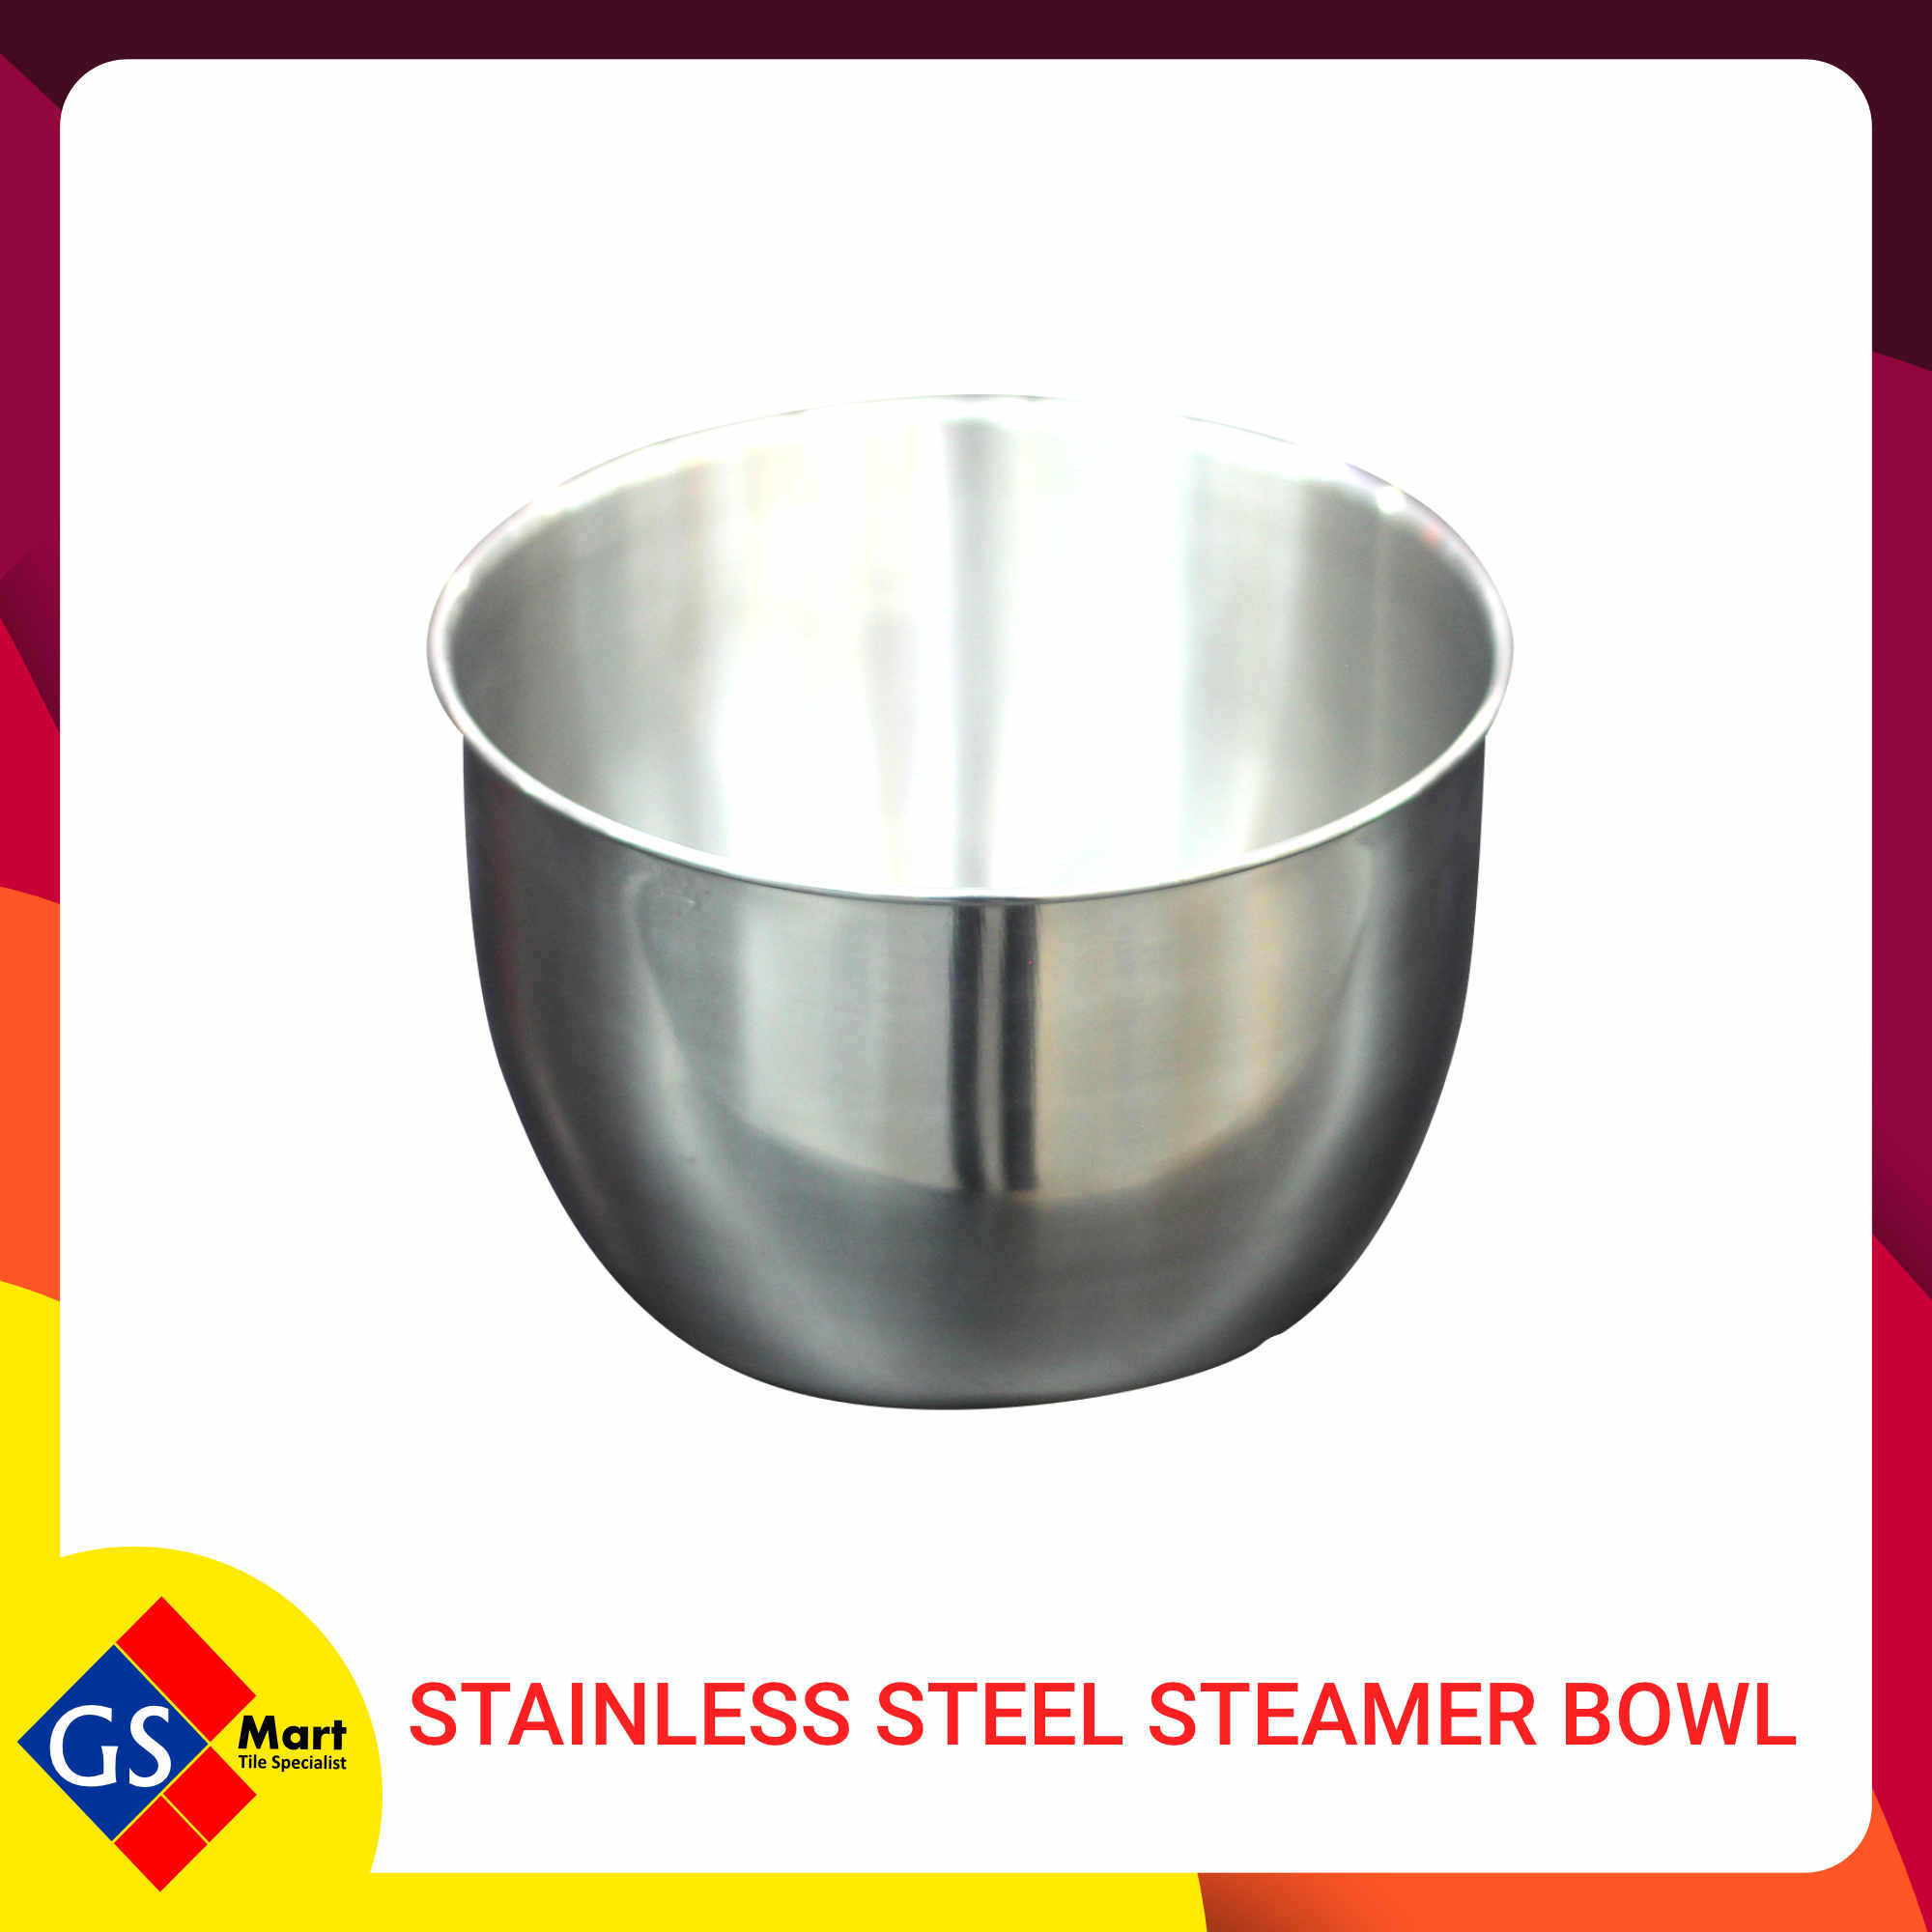 image of STAINLESS STEEL STEAMER BOWL